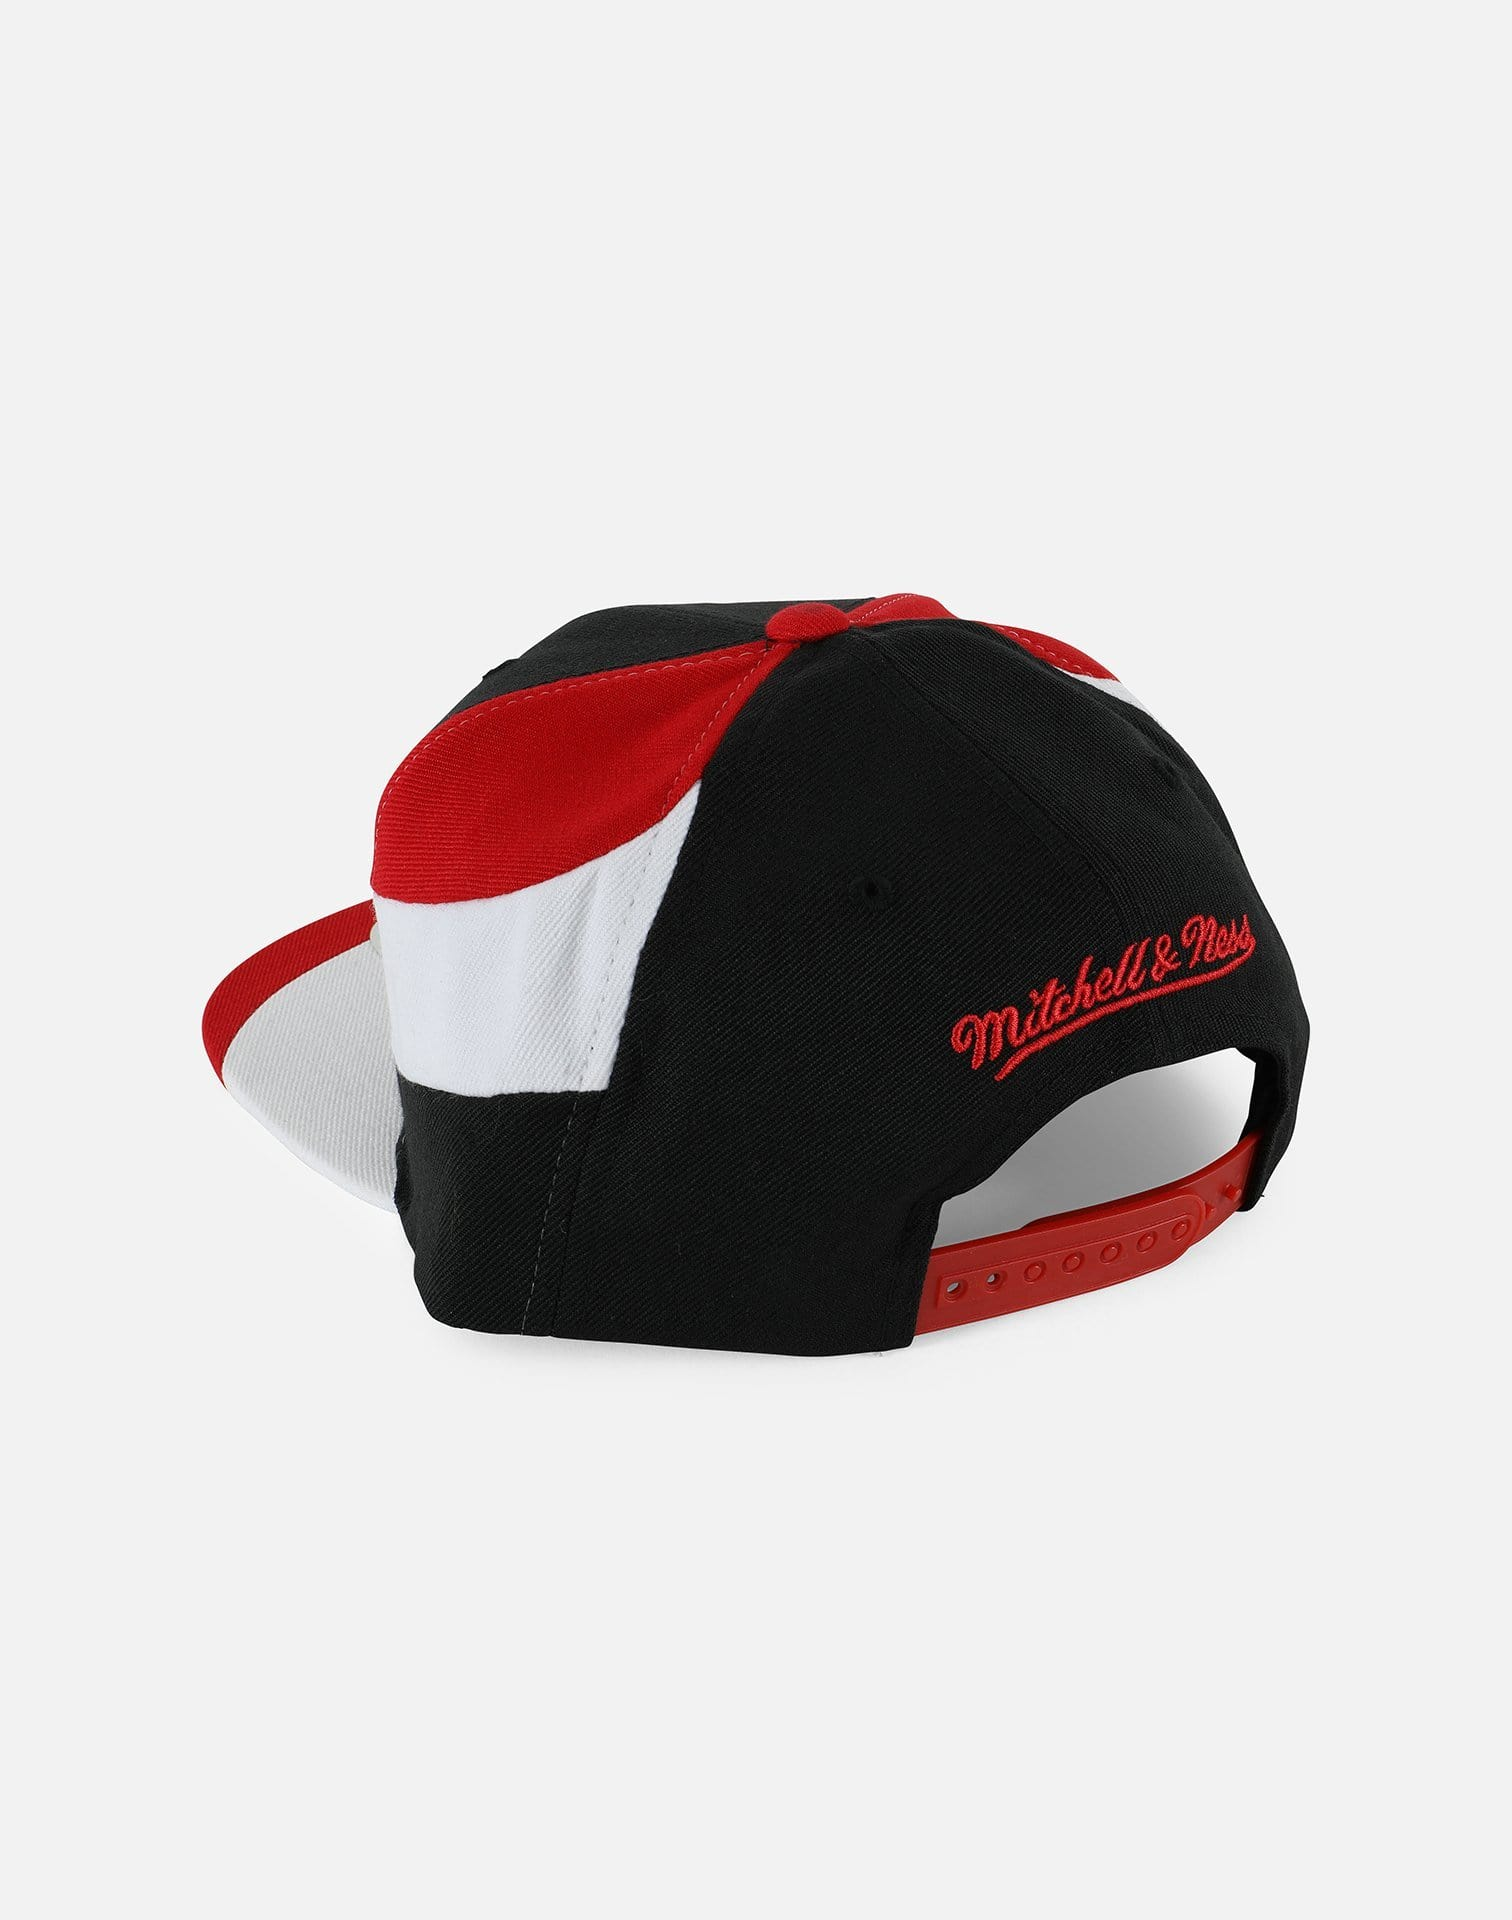 Mitchell & Ness NBA Chicago Bulls Snapback Hat